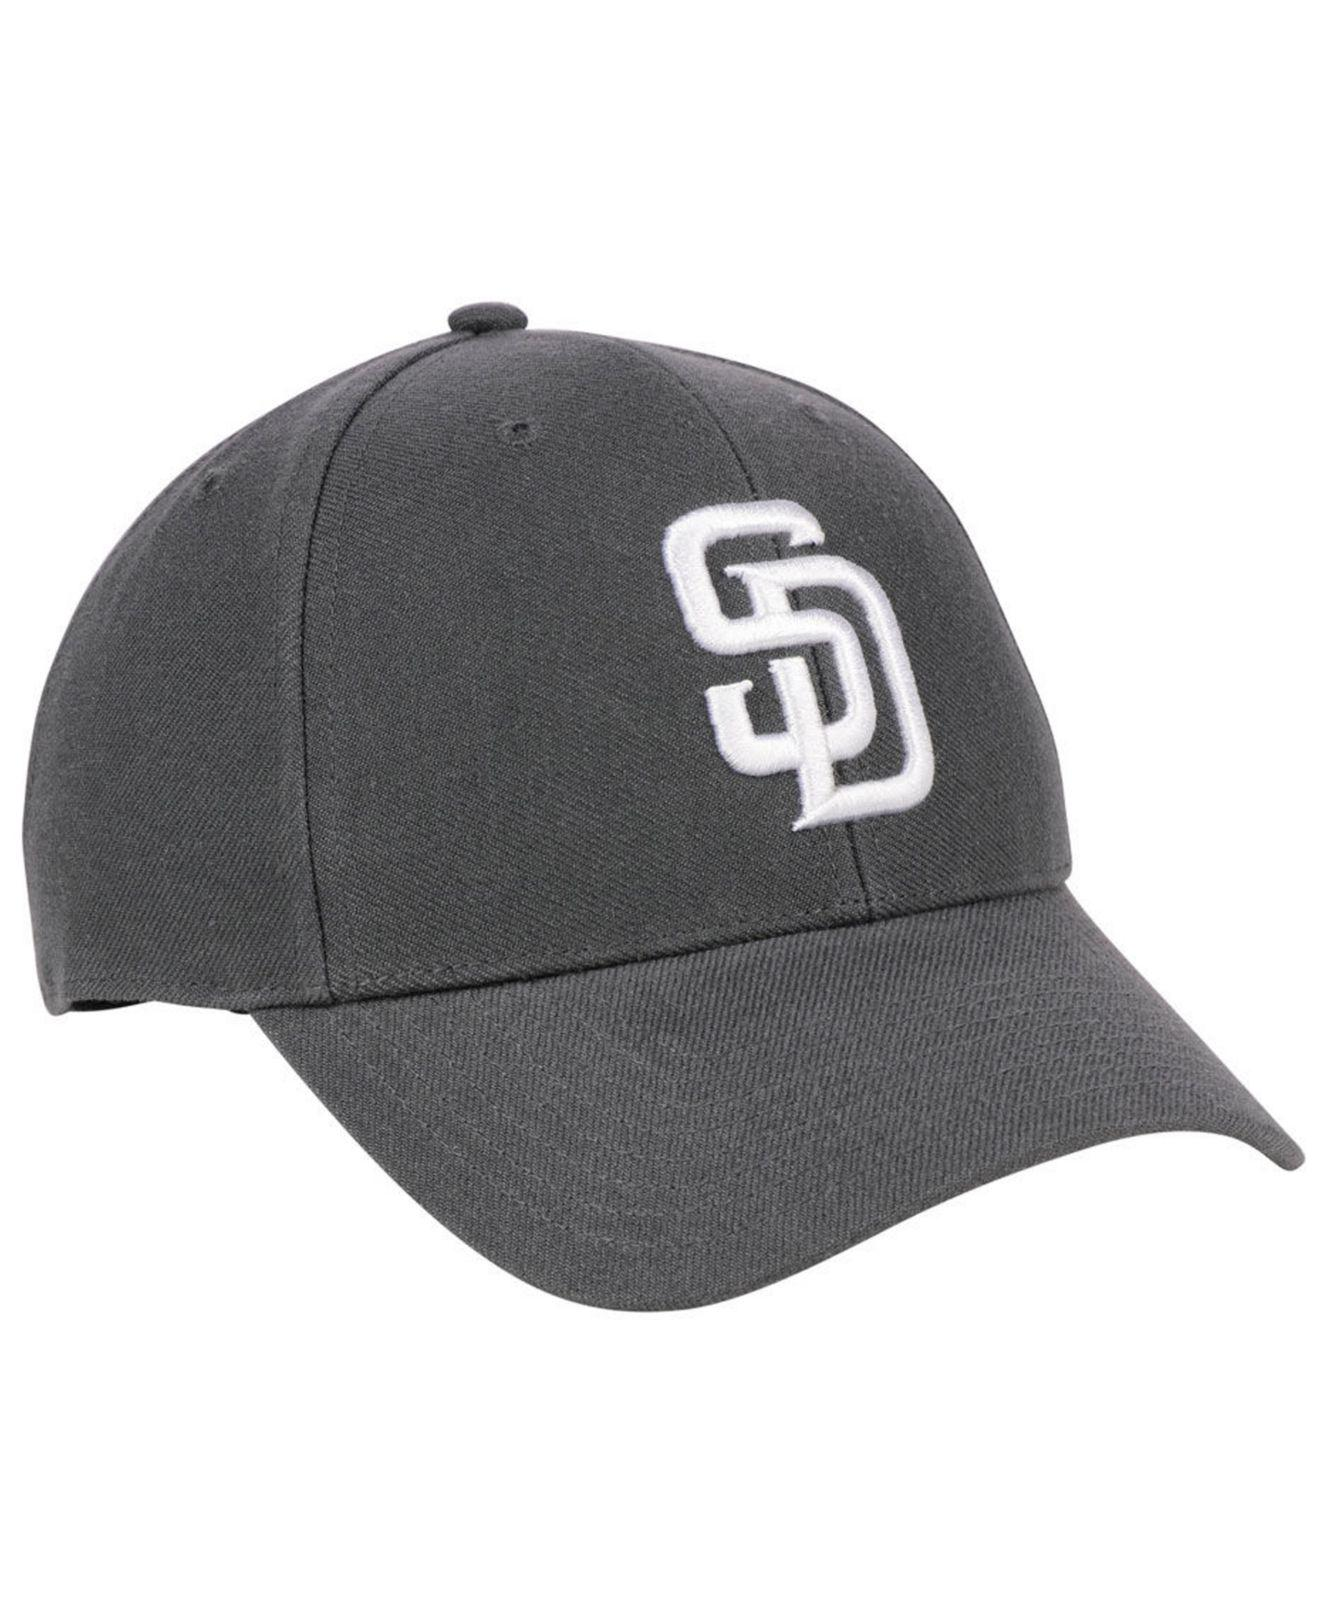 new arrival 16e00 24c1c ... aliexpress 47 brand gray san diego padres charcoal mvp cap for men  lyst. view fullscreen